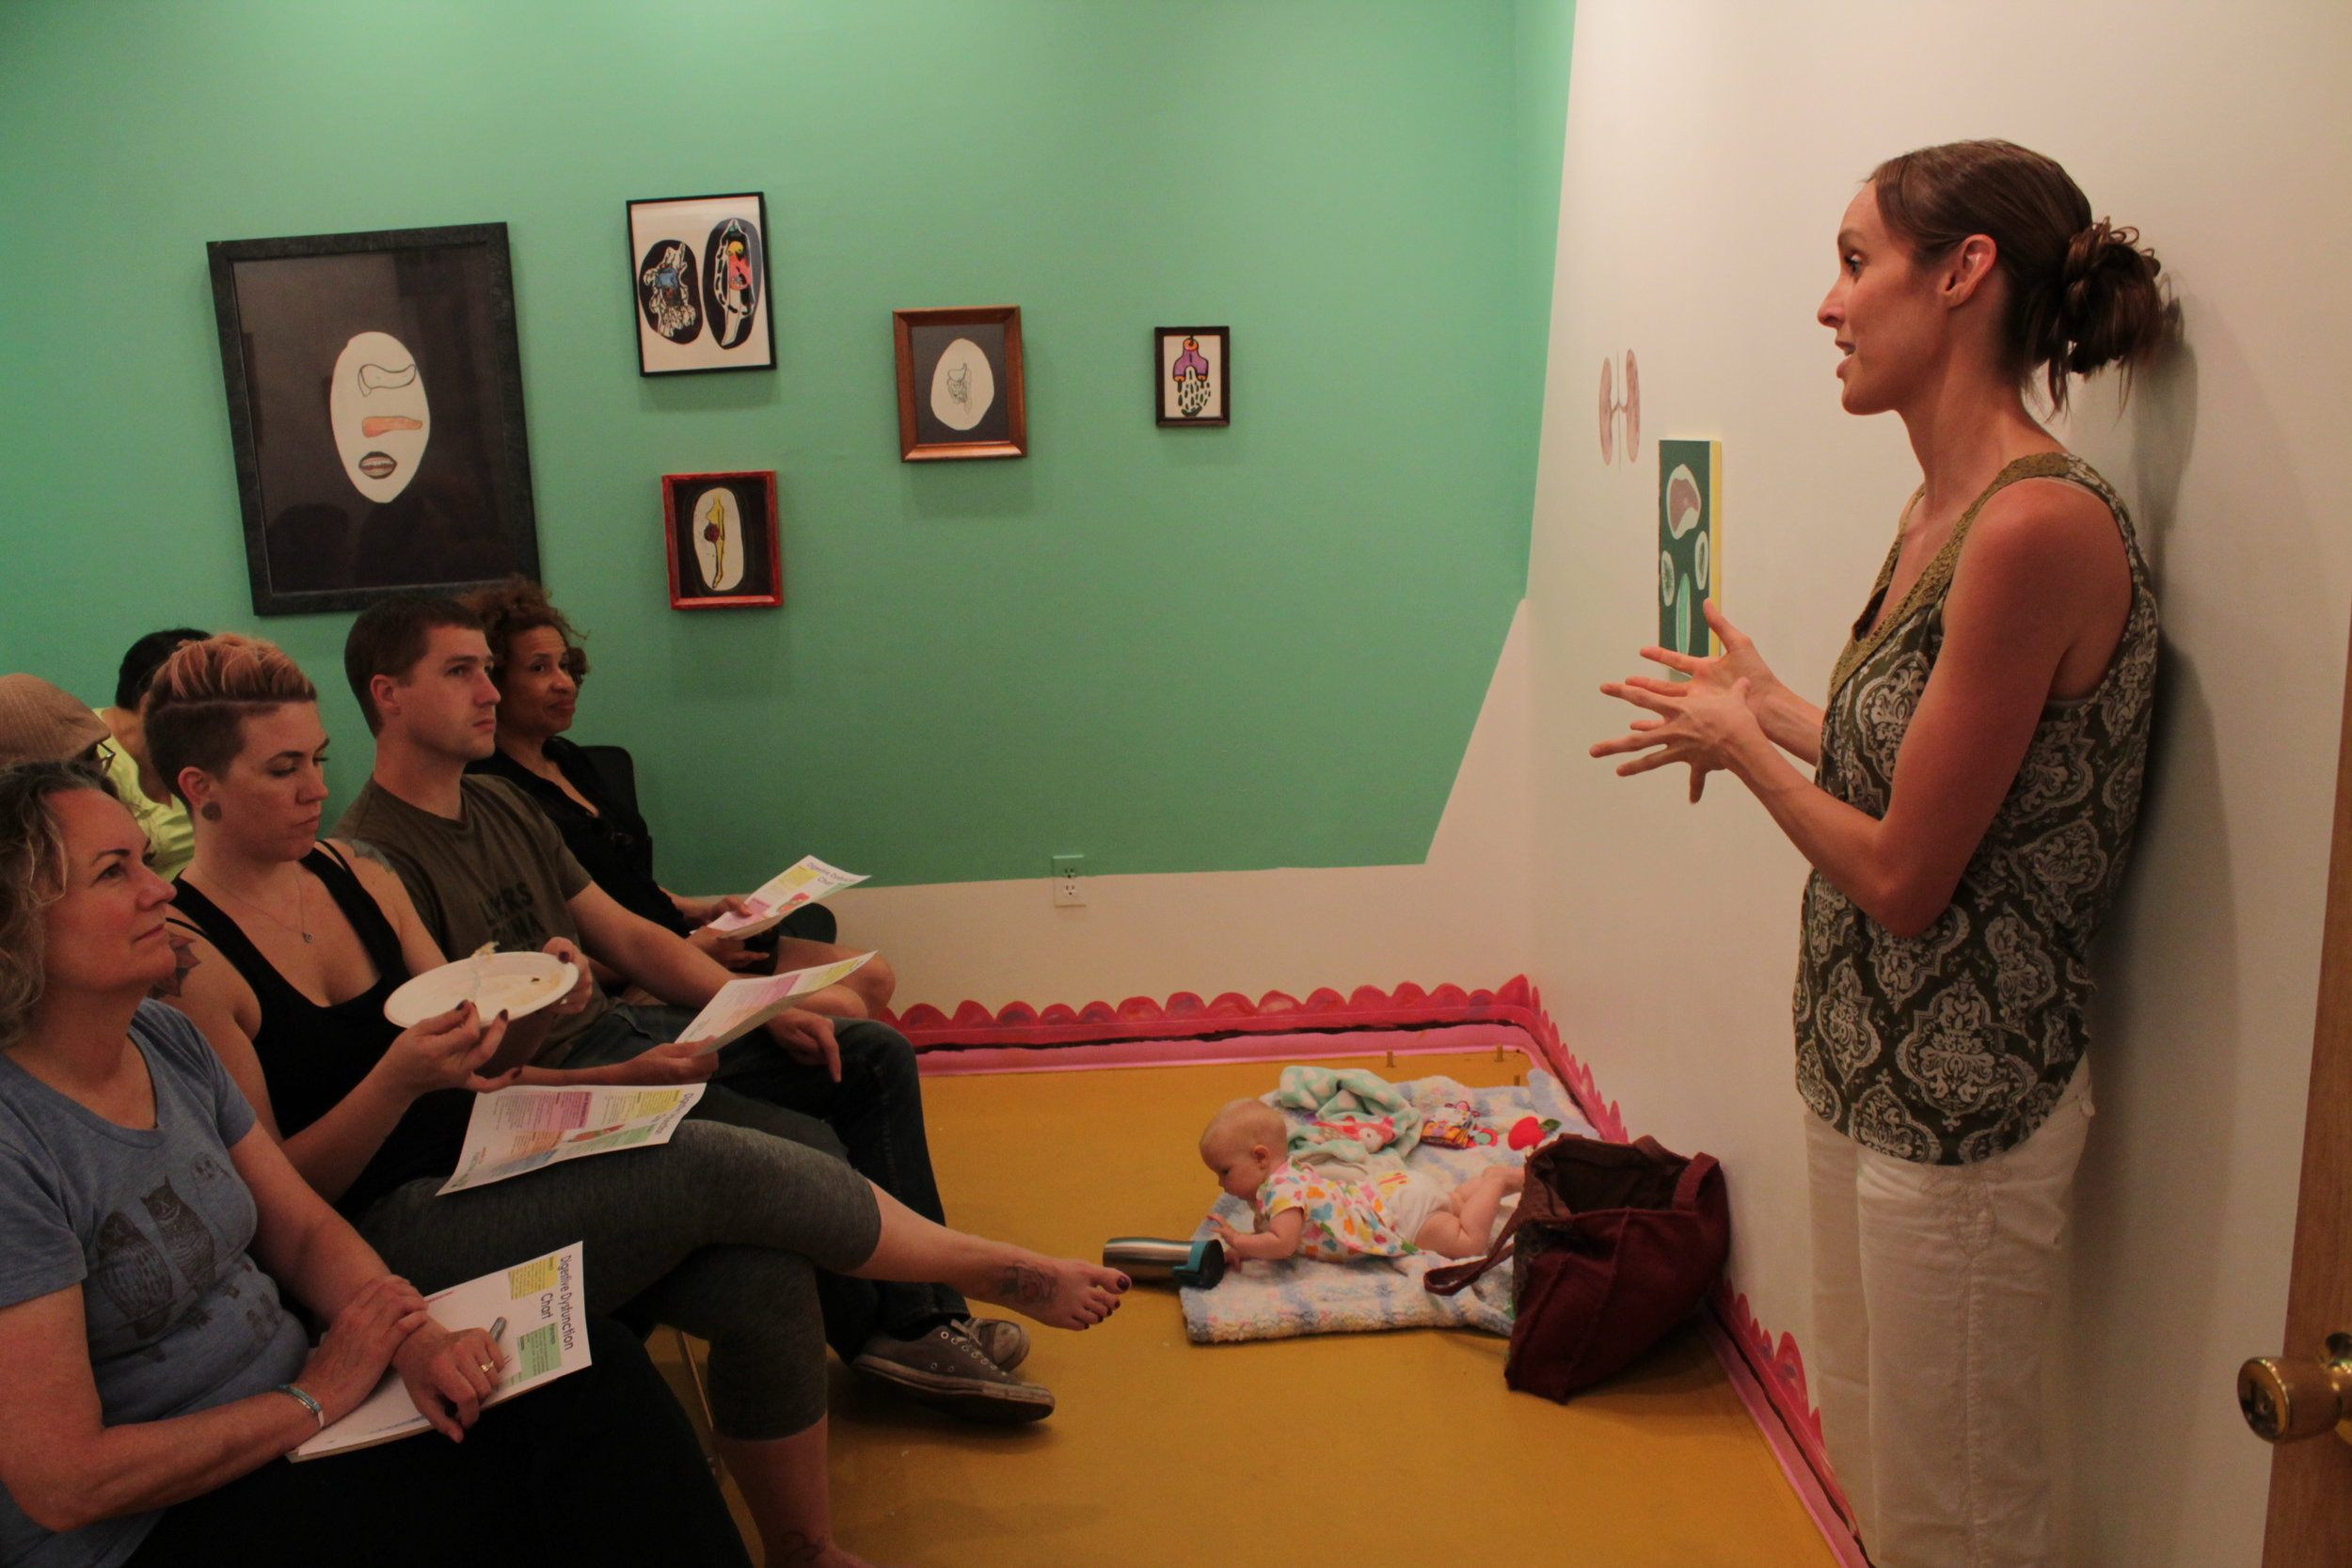 Pie Hole to A Hole was a program in part of the Loo-vre gallery (a gallery based on digestion) hosted in Big Car Collaborative's space. The first half of the program featured yoga for digestion and the second half was an informative talk on digestion by a local Indianapolis functional medicine doctor.